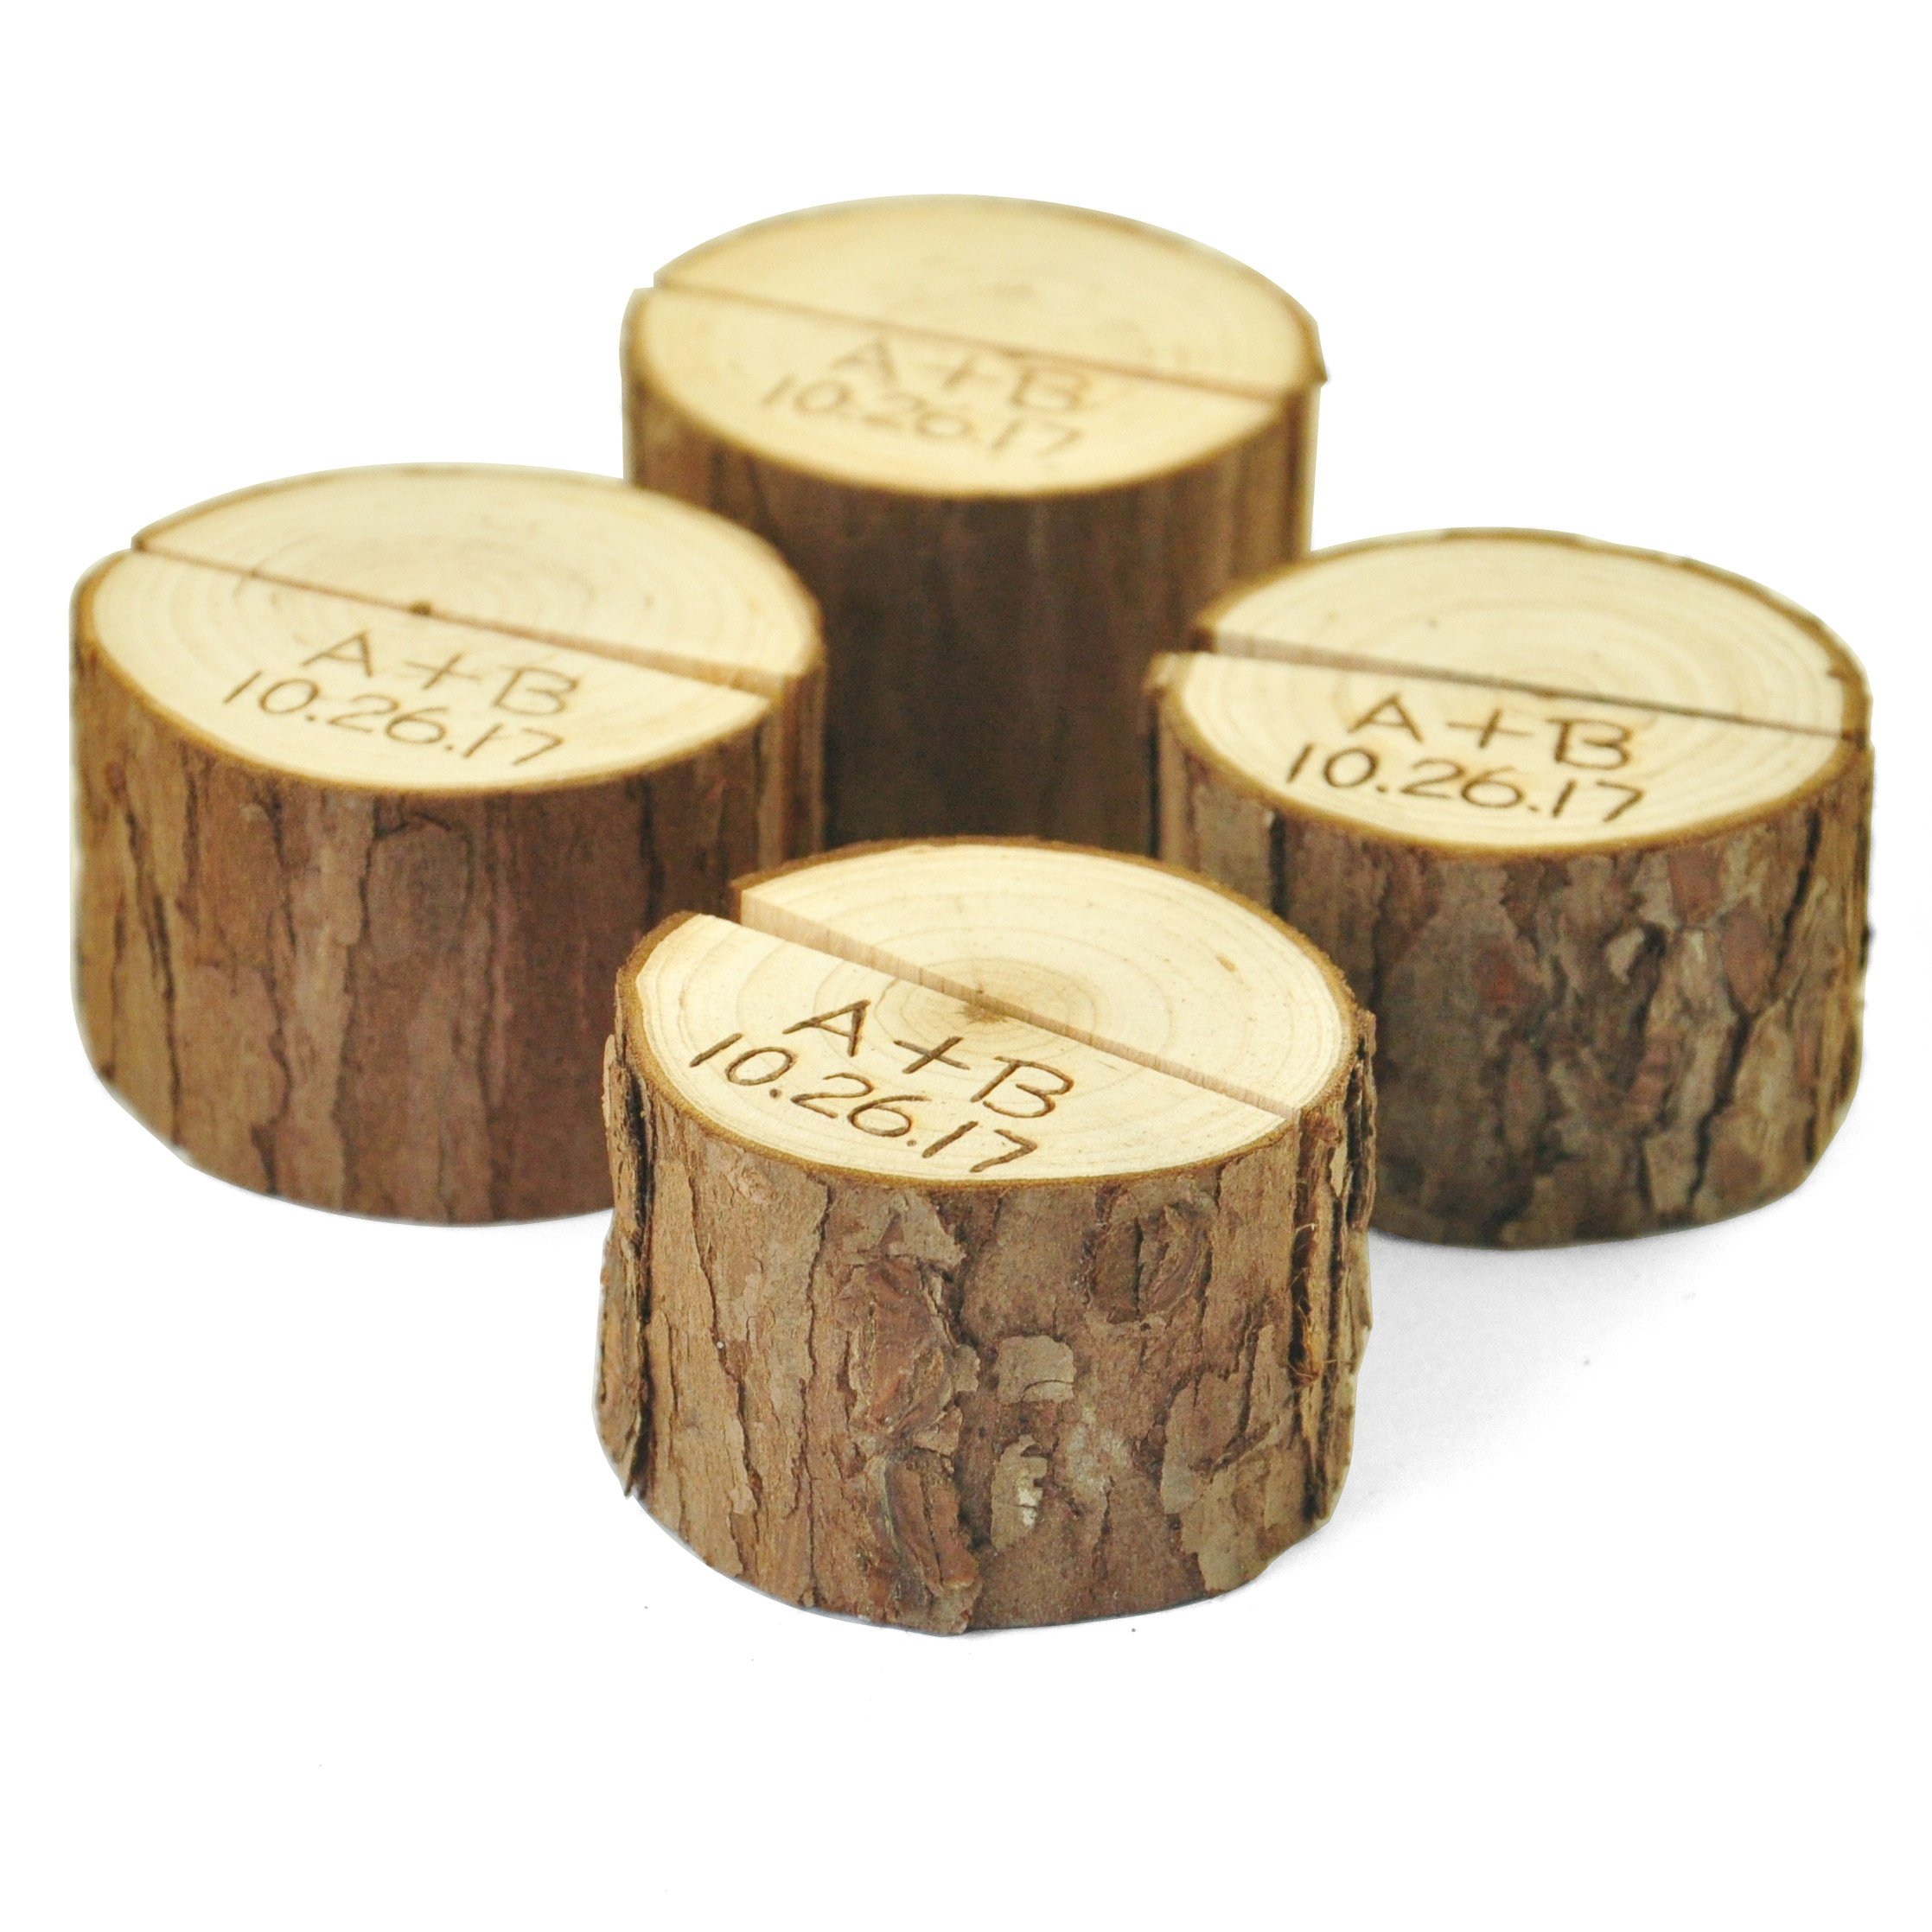 Set of 10 Personalized Wood Table Number Holder,Table Number 1-10 Holder,Wedding place card holder,Rustic table Party decor by ZXB JEWELRY (Image #4)